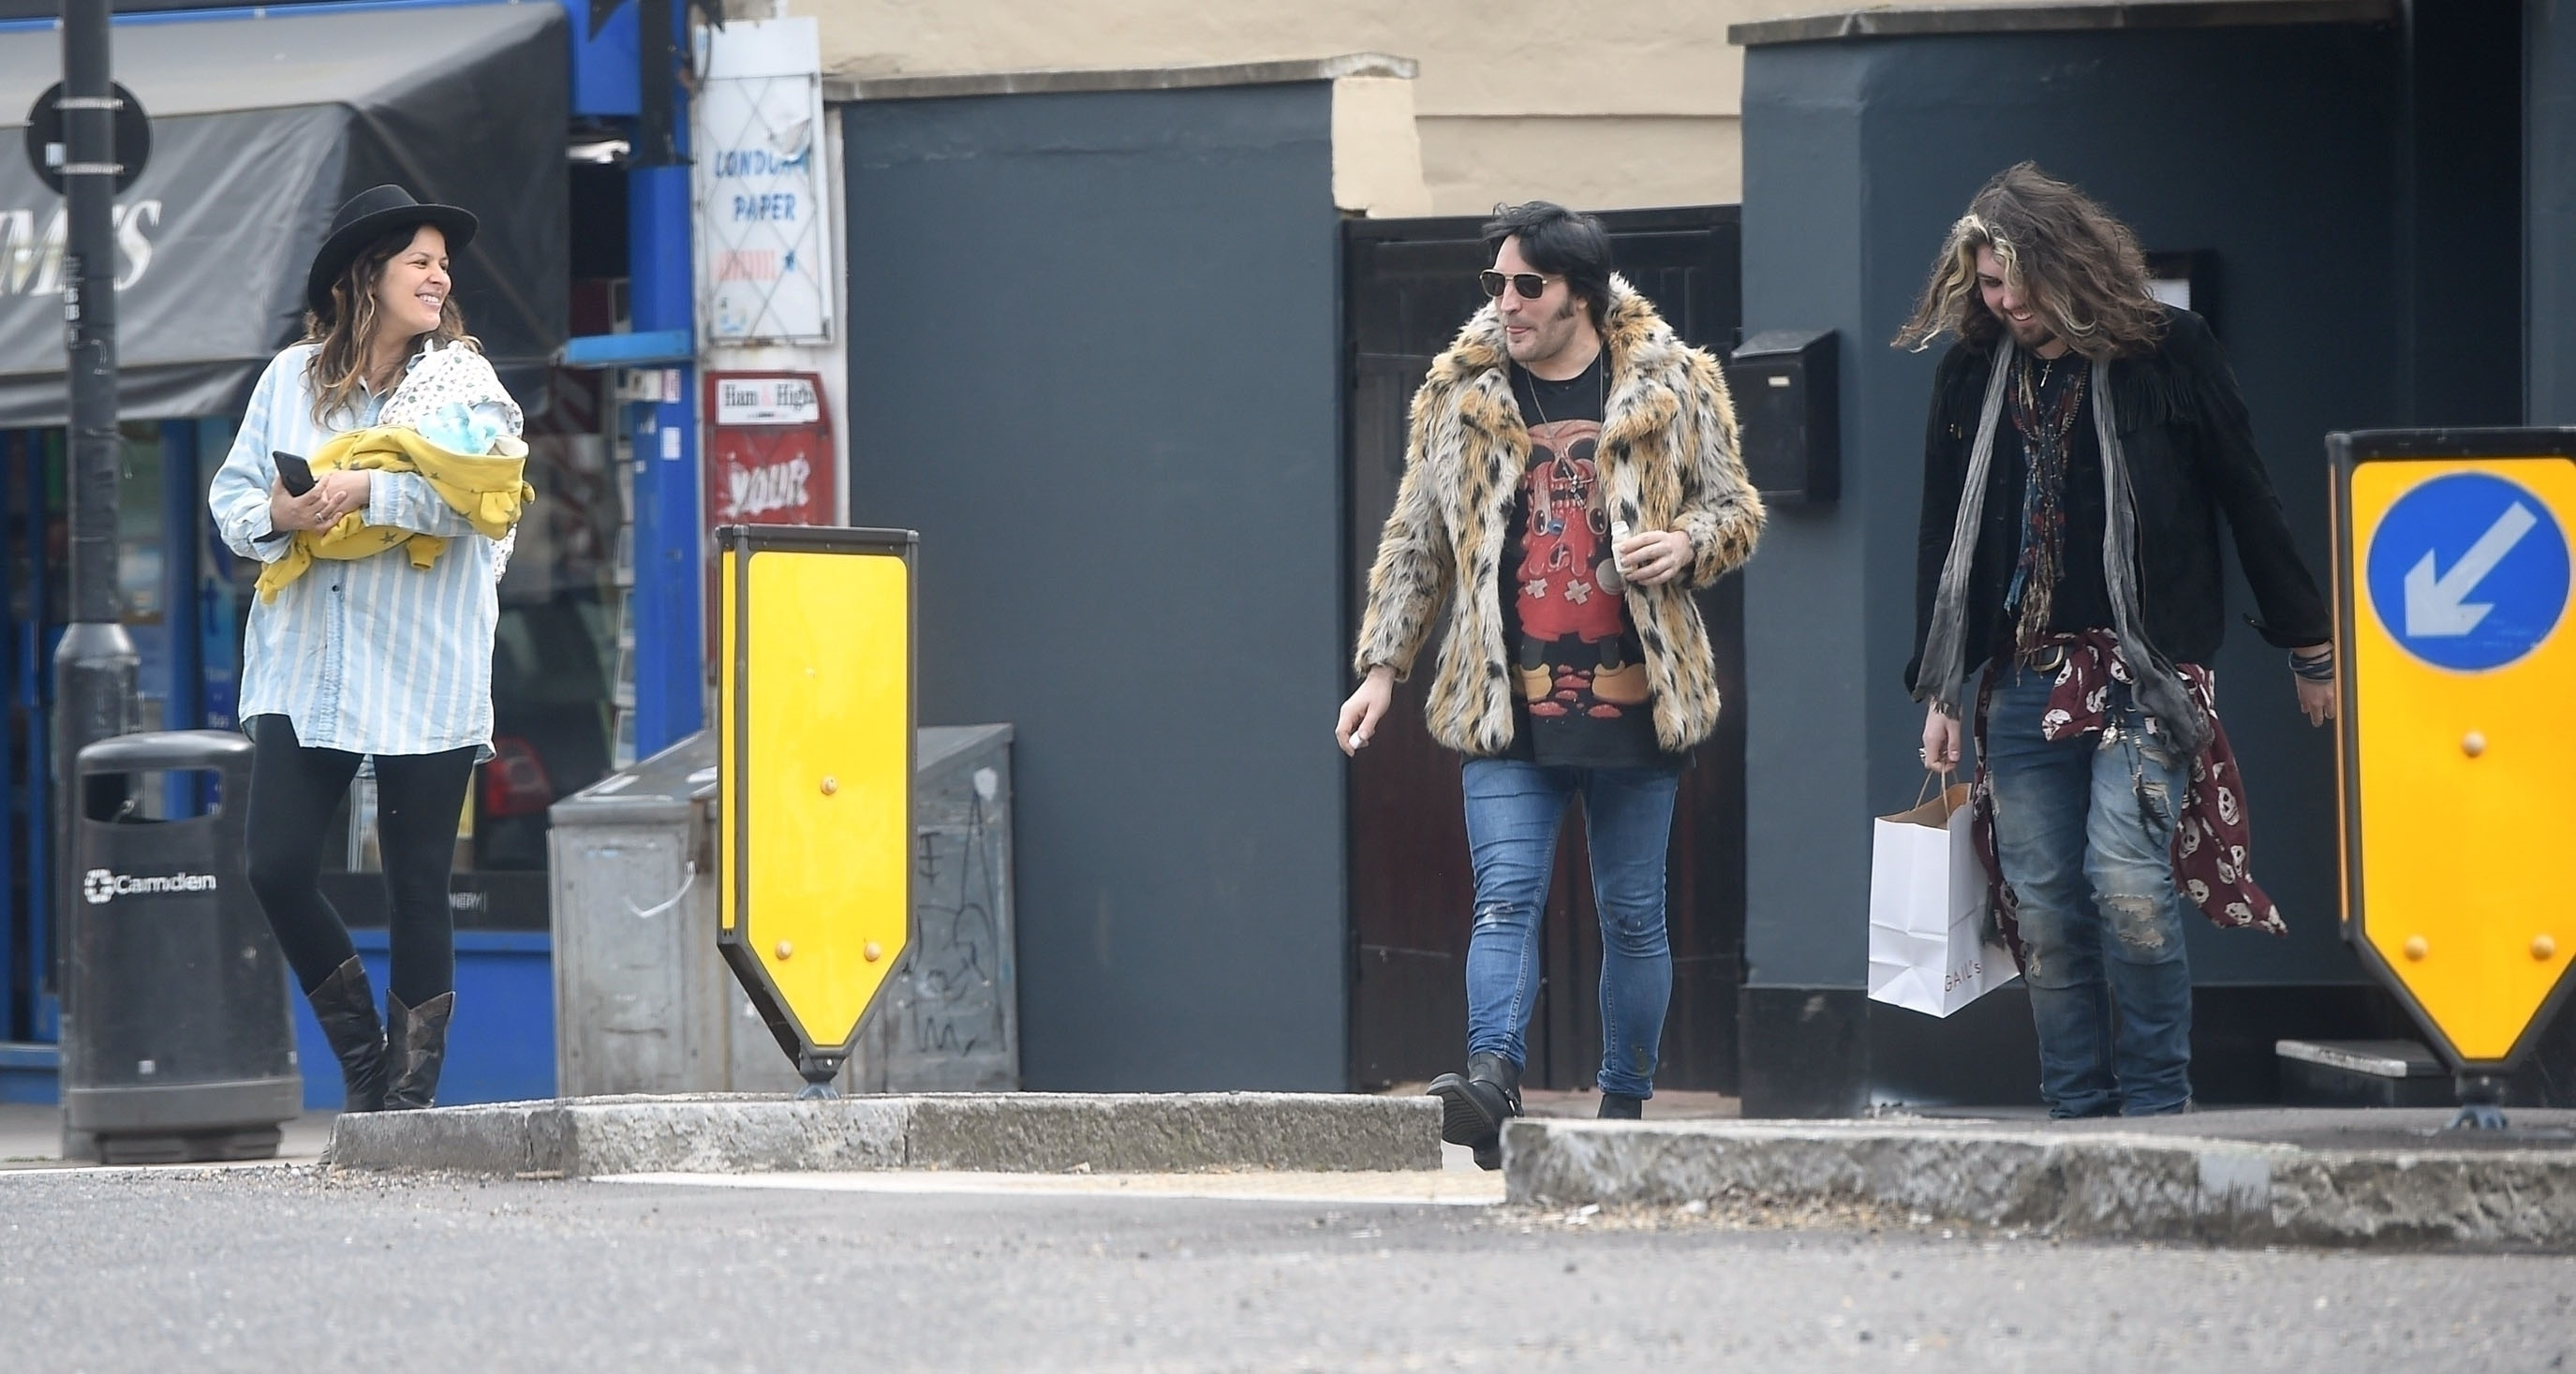 Noel Fielding and Lliana Bird new baby